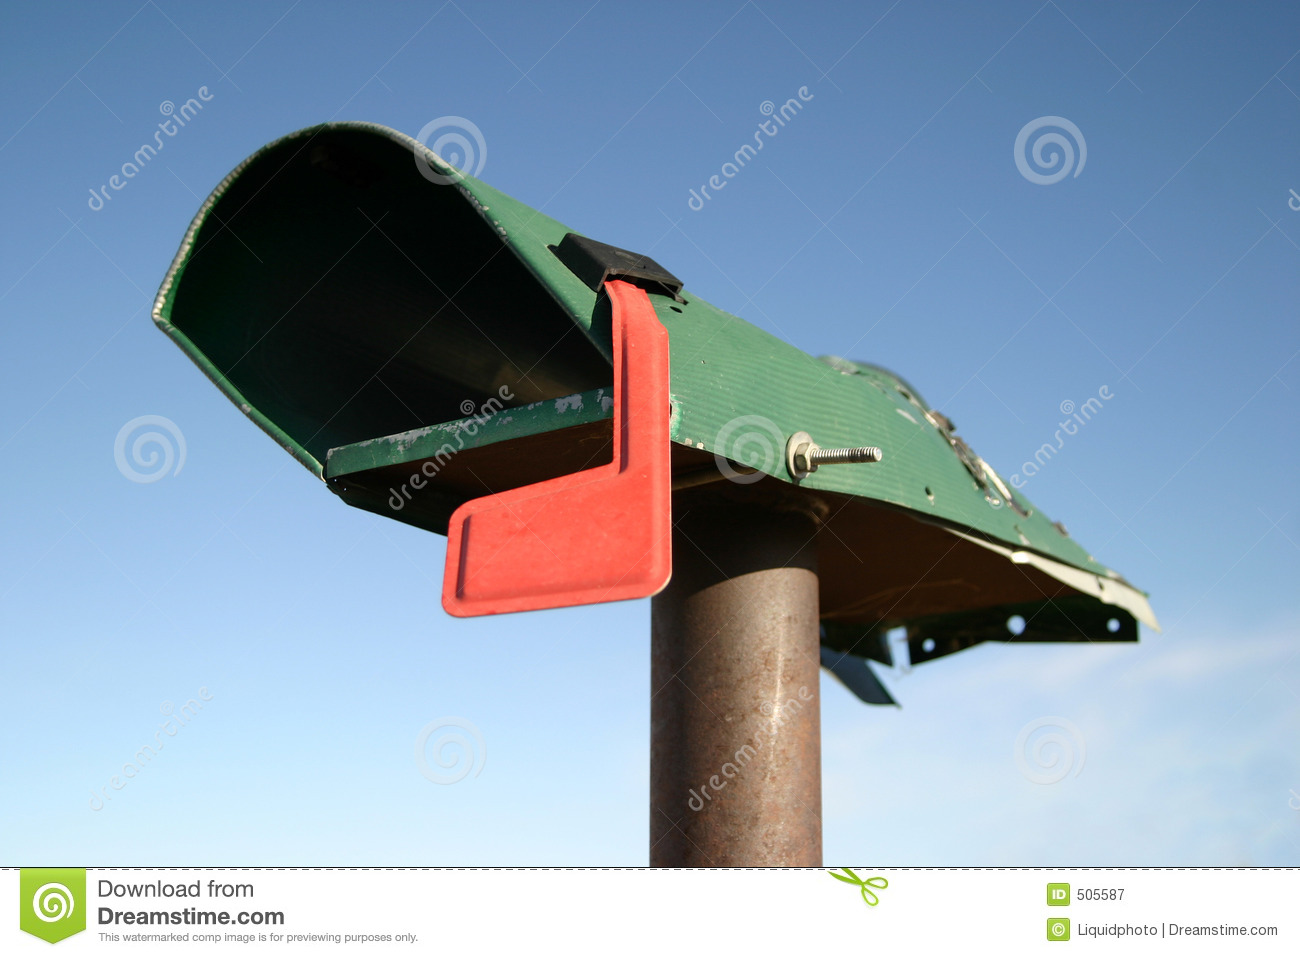 Snail Mail stock image  Image of email, communications - 505587